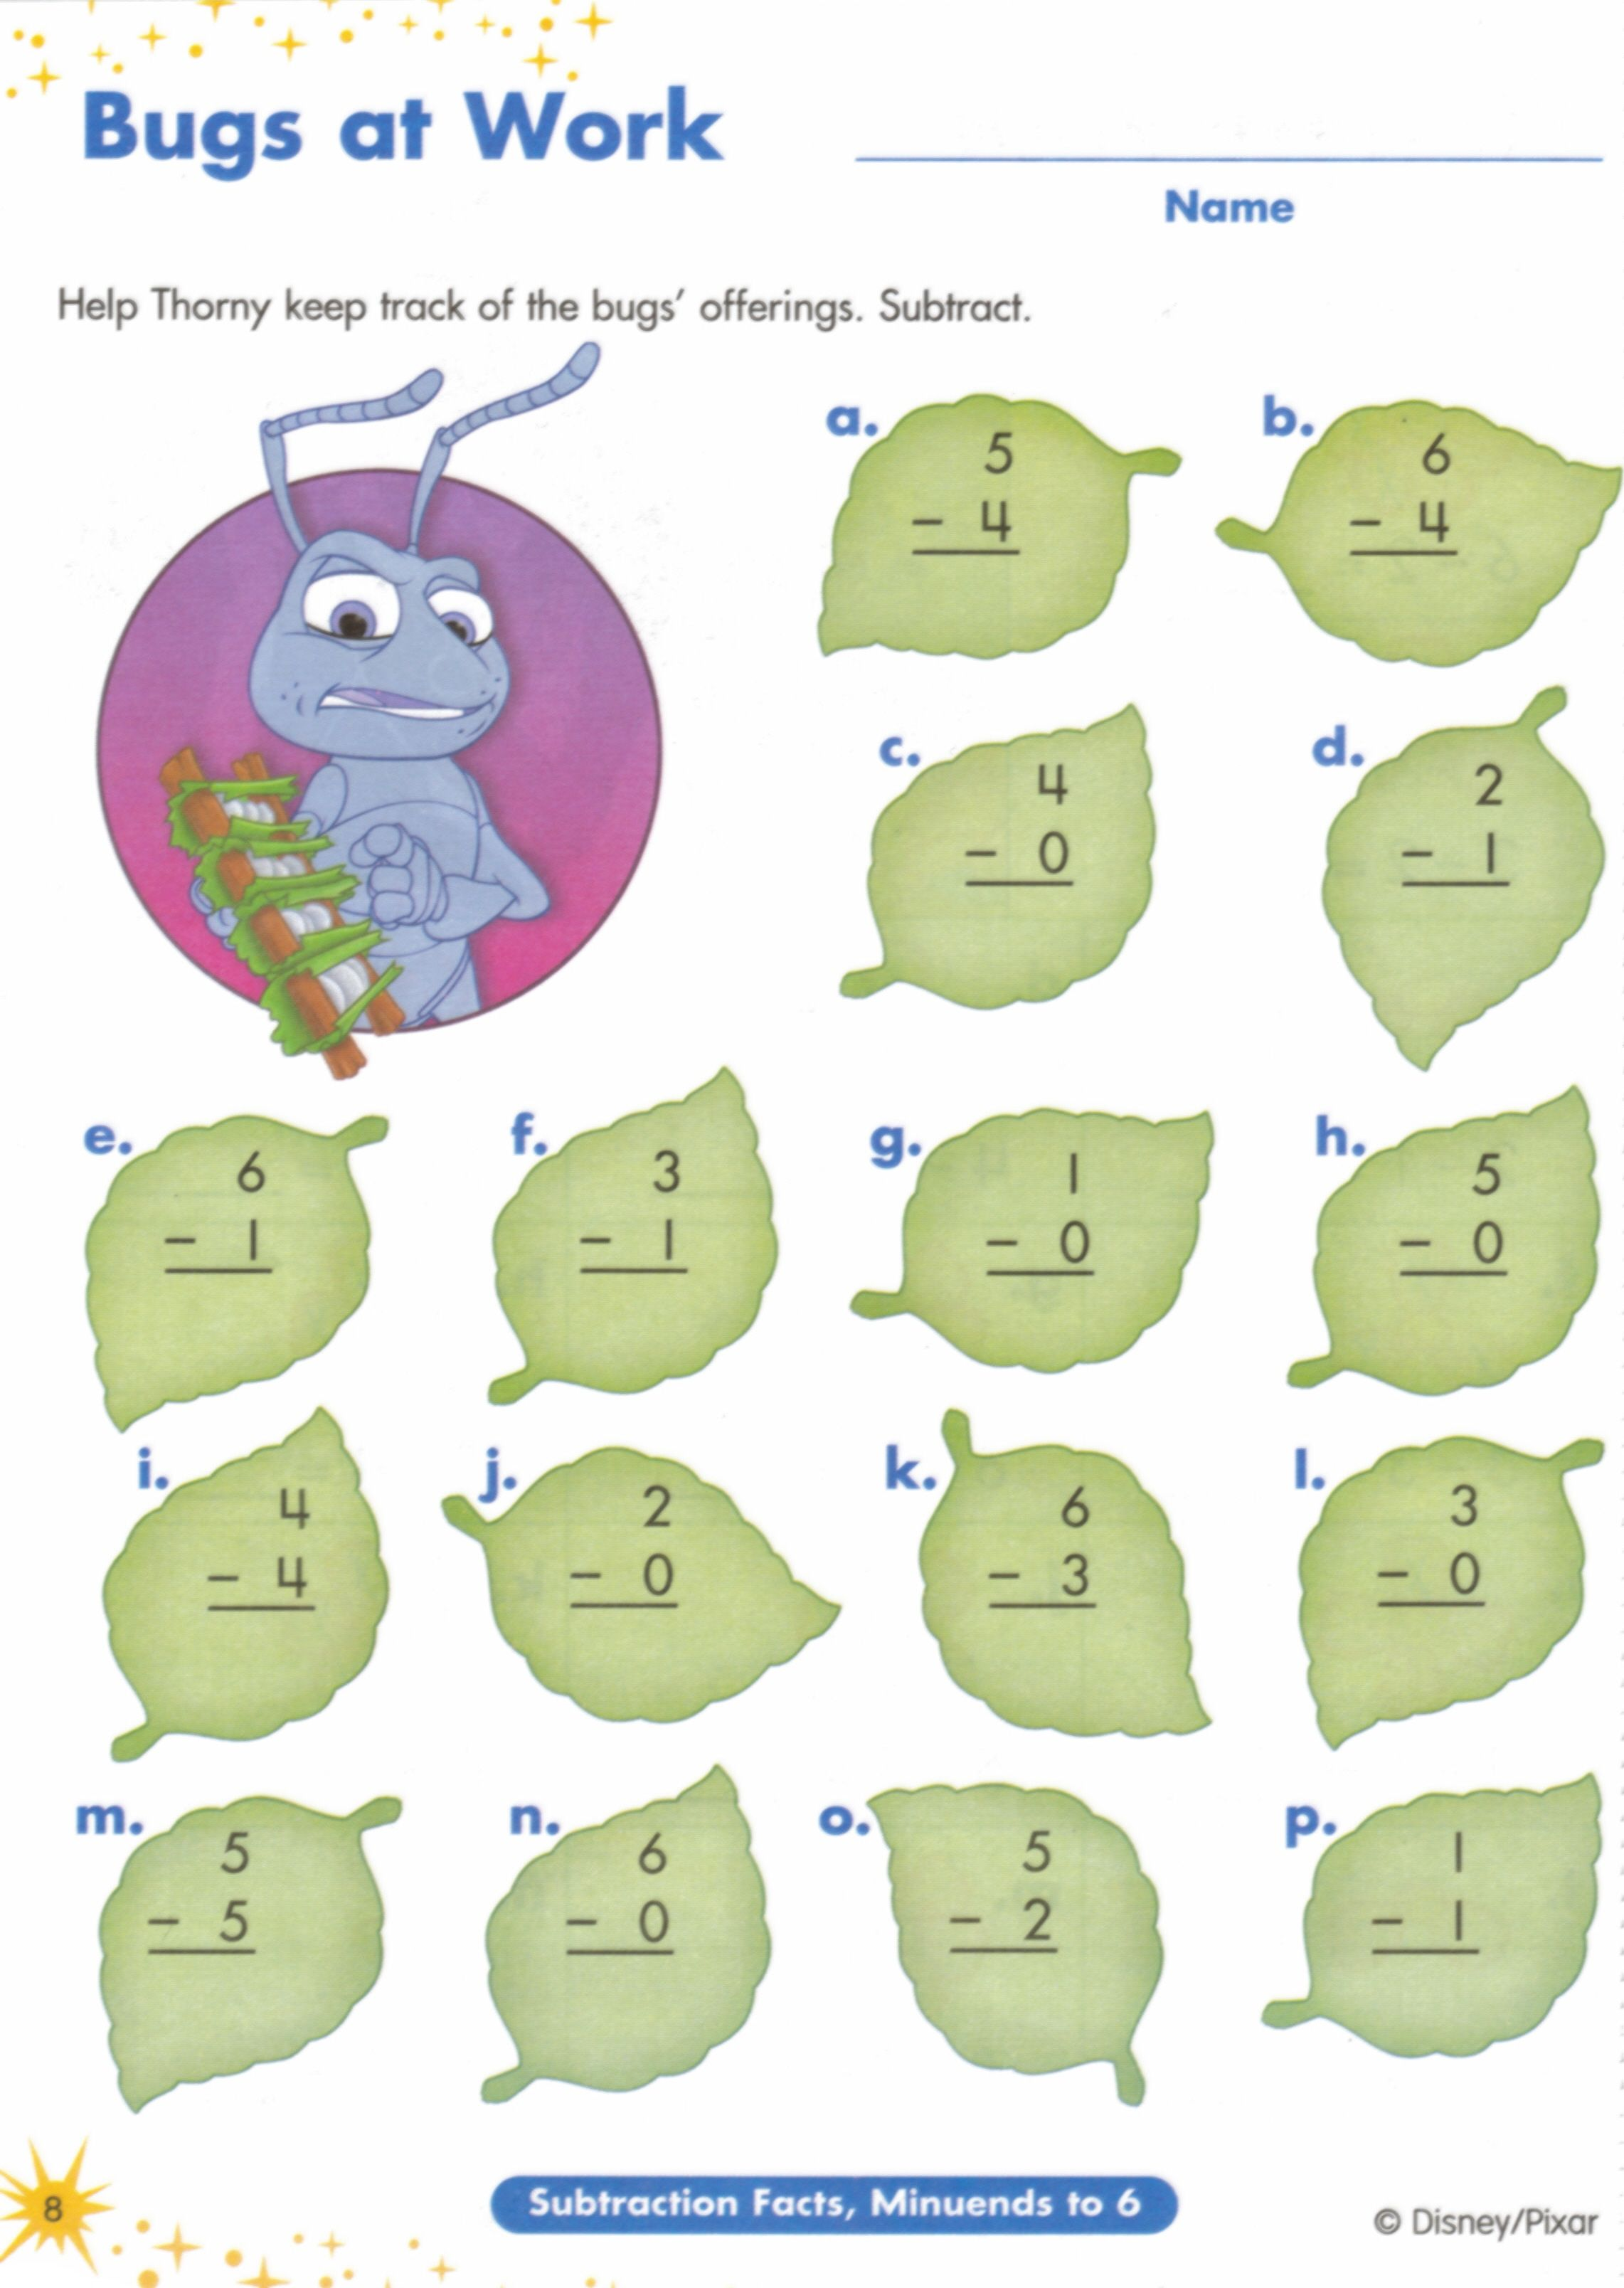 Proatmealus  Personable  Images About Worksheets On Pinterest  Fun Facts For Kids  With Licious  Images About Worksheets On Pinterest  Fun Facts For Kids Earth Day Worksheets And Jungles With Awesome Inference Worksheets Nd Grade Also Improve Handwriting Worksheets In Addition Martin Luther King Worksheet And The Compound Microscope Worksheet As Well As Polynomial Equations Worksheet Additionally Solving Linear Systems By Substitution Worksheet From Pinterestcom With Proatmealus  Licious  Images About Worksheets On Pinterest  Fun Facts For Kids  With Awesome  Images About Worksheets On Pinterest  Fun Facts For Kids Earth Day Worksheets And Jungles And Personable Inference Worksheets Nd Grade Also Improve Handwriting Worksheets In Addition Martin Luther King Worksheet From Pinterestcom